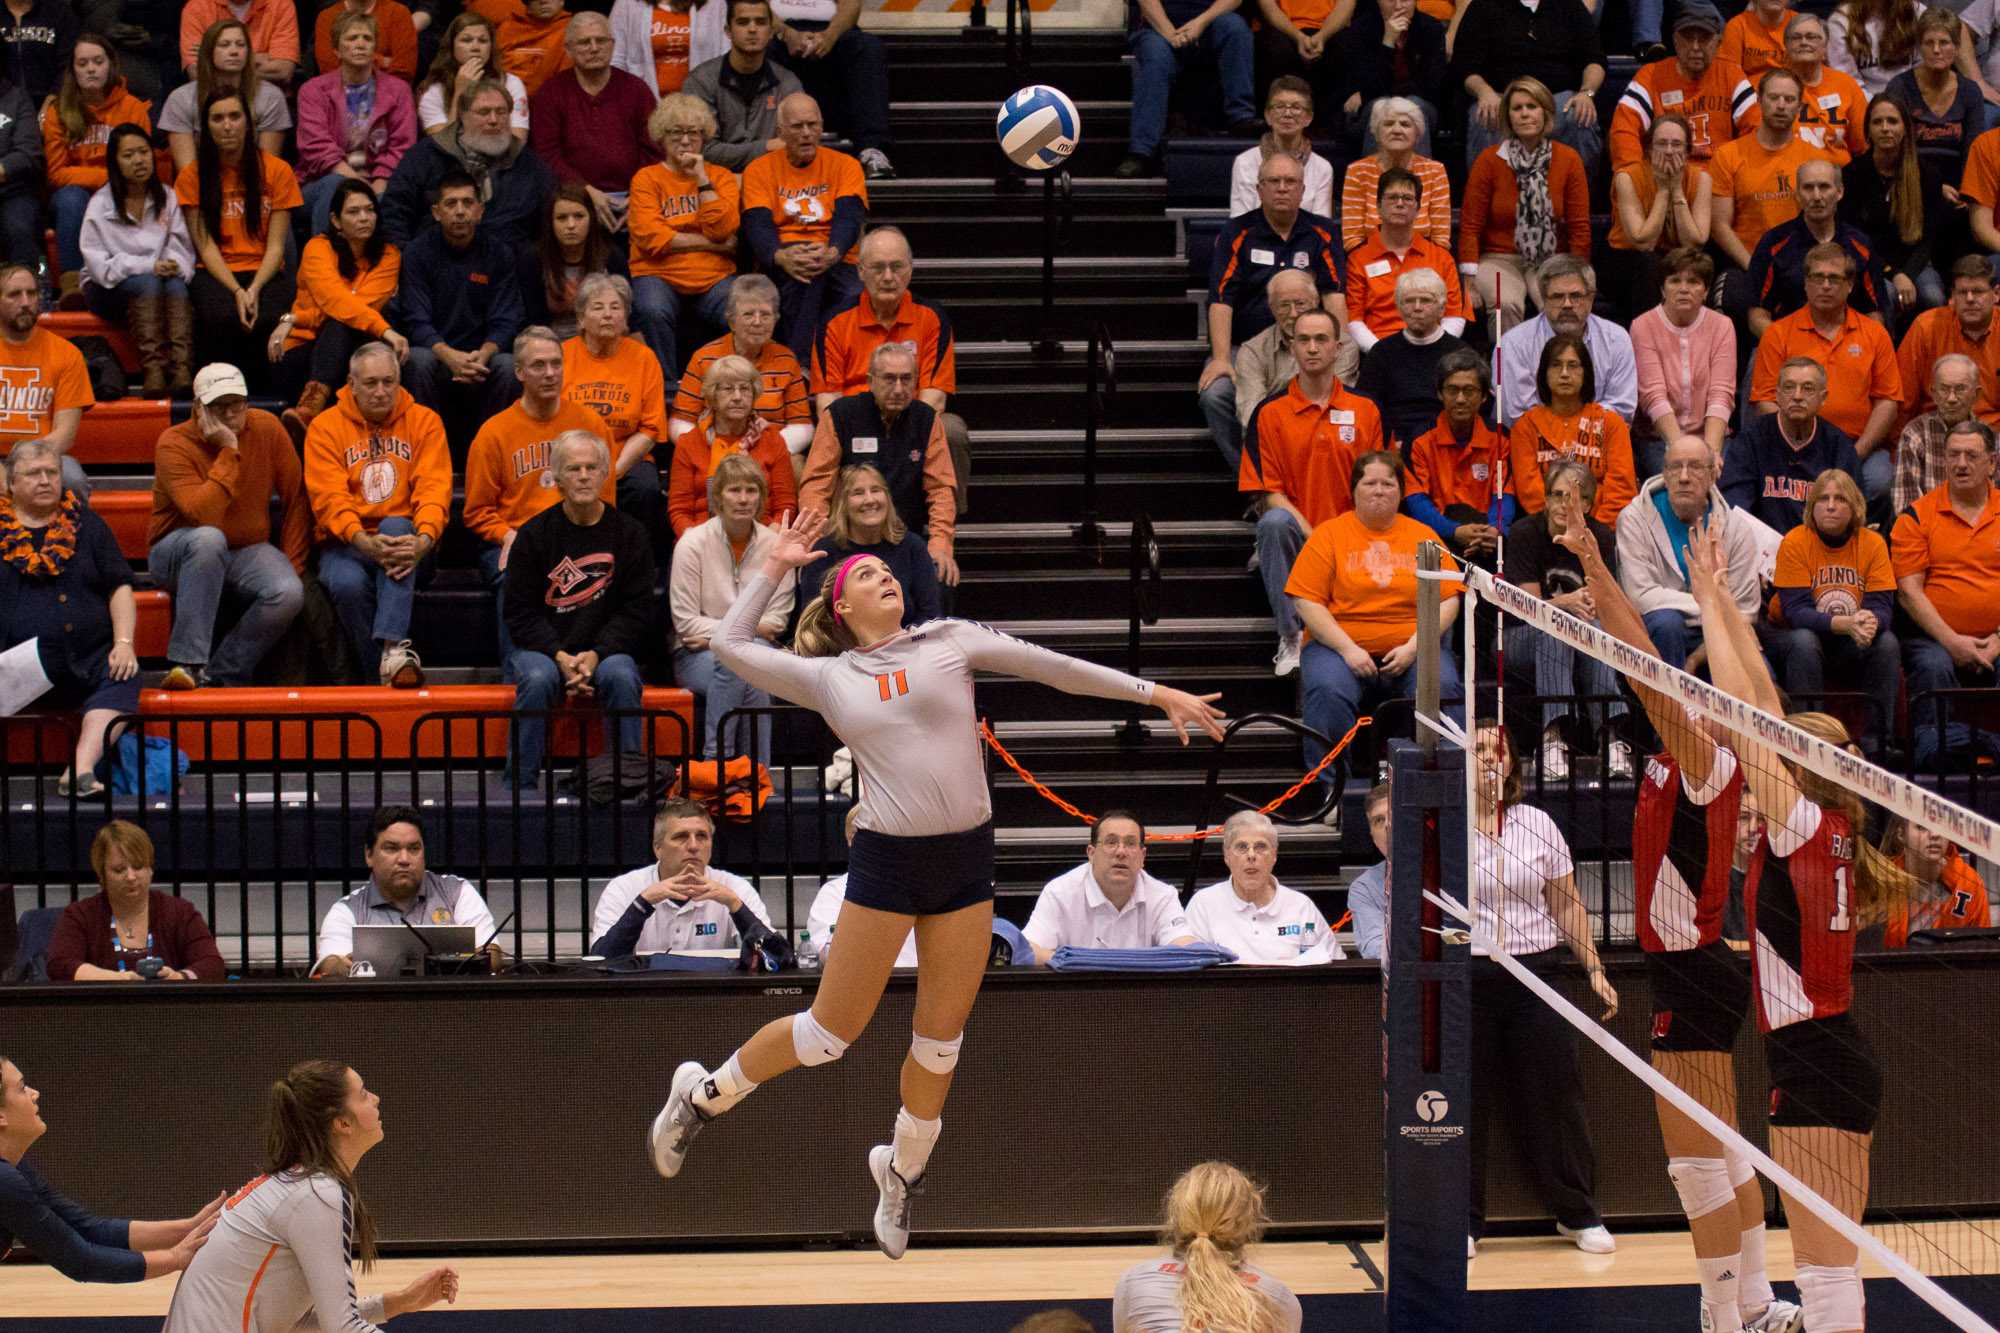 Illinois' Katie Roustio gets ready to spike the ball during the match against Wisconsin at Huff Hall on Wednesday, Nov. 18, 2015. Illinois lost 3-2.